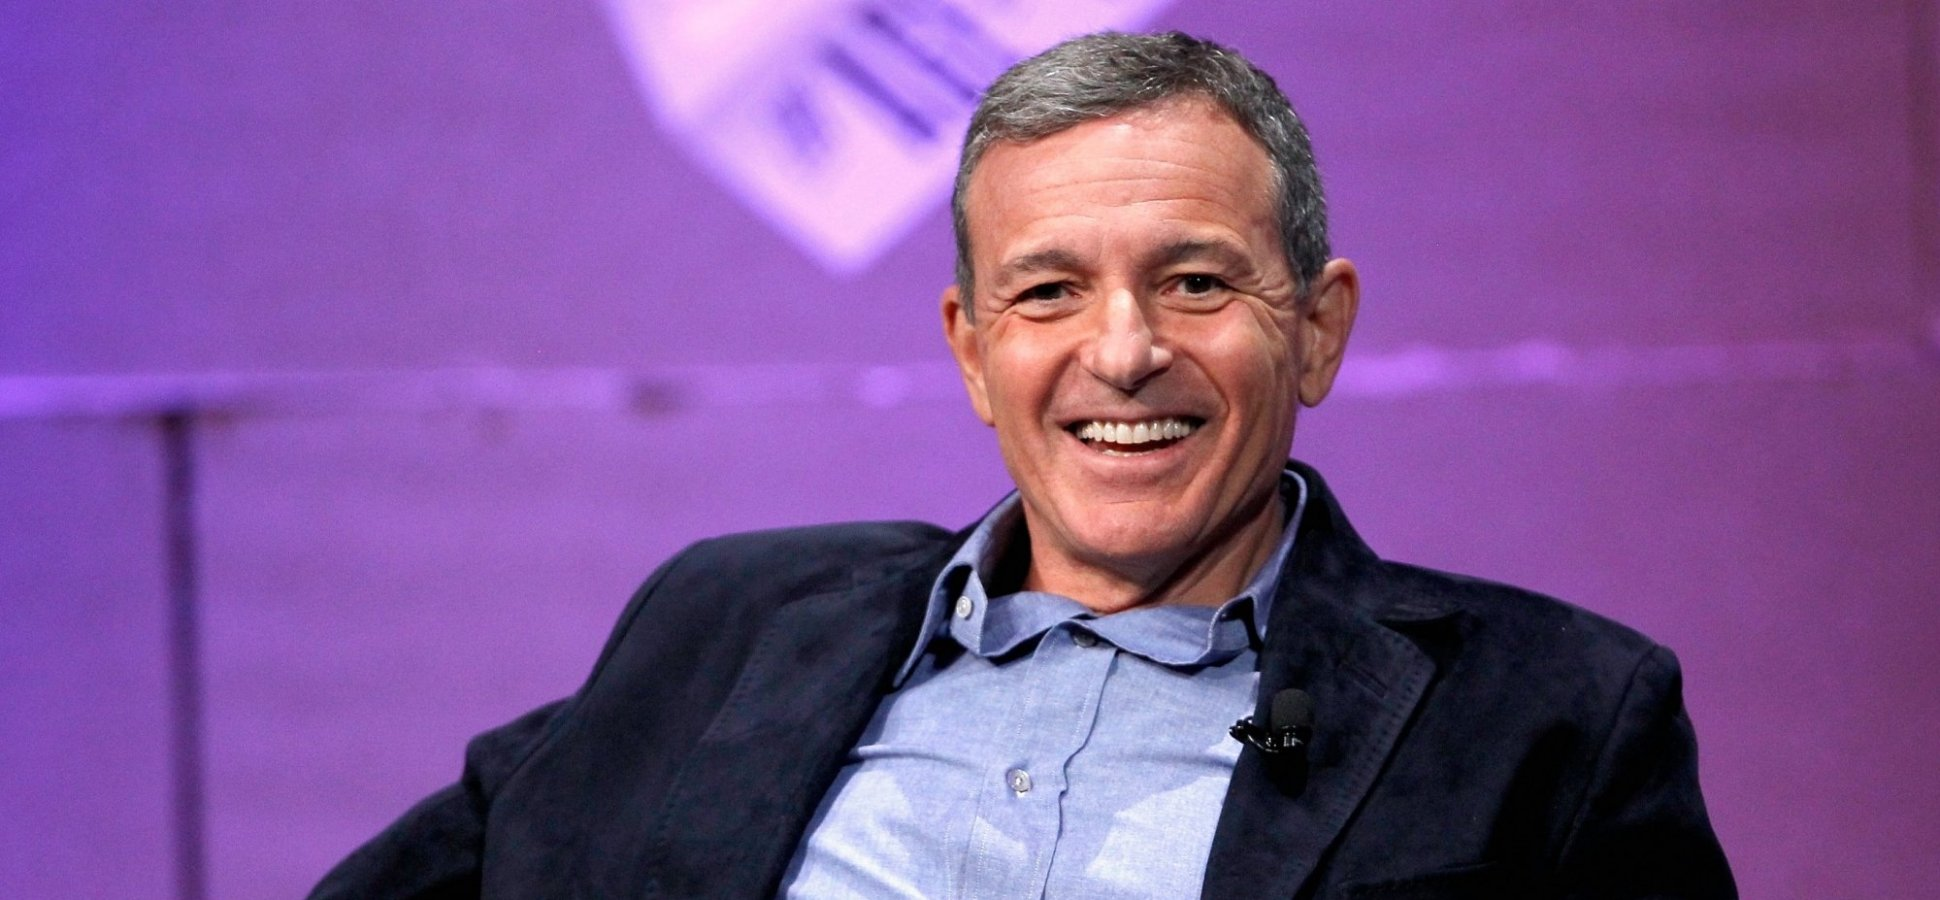 Disney's Bob Iger Was Just Named Time's Businessperson of the Year and Baby Yoda Is Exactly the Reason Why